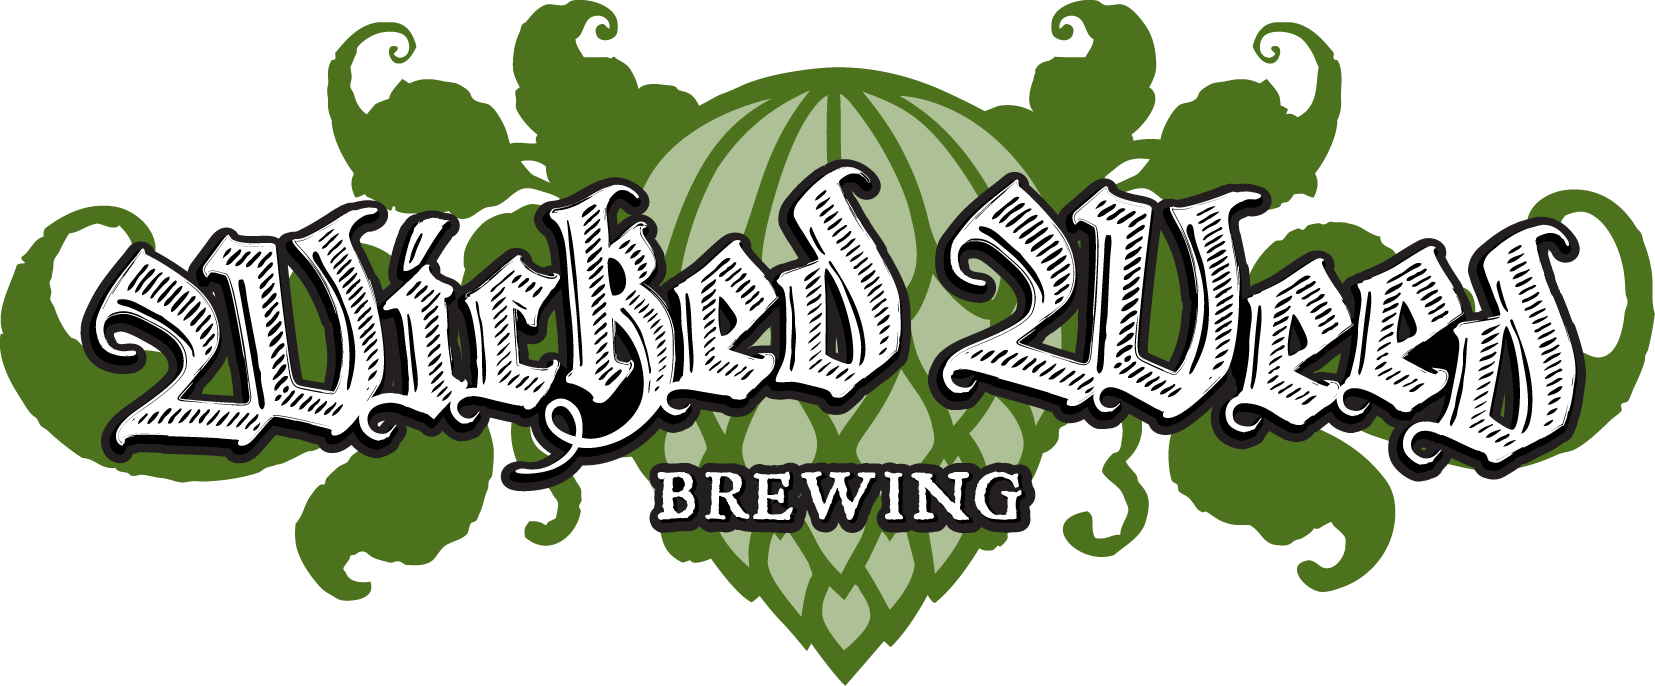 Wicked_Weed_Brewing_logo_local_flavor_avl_visit_explore_beer_asheville